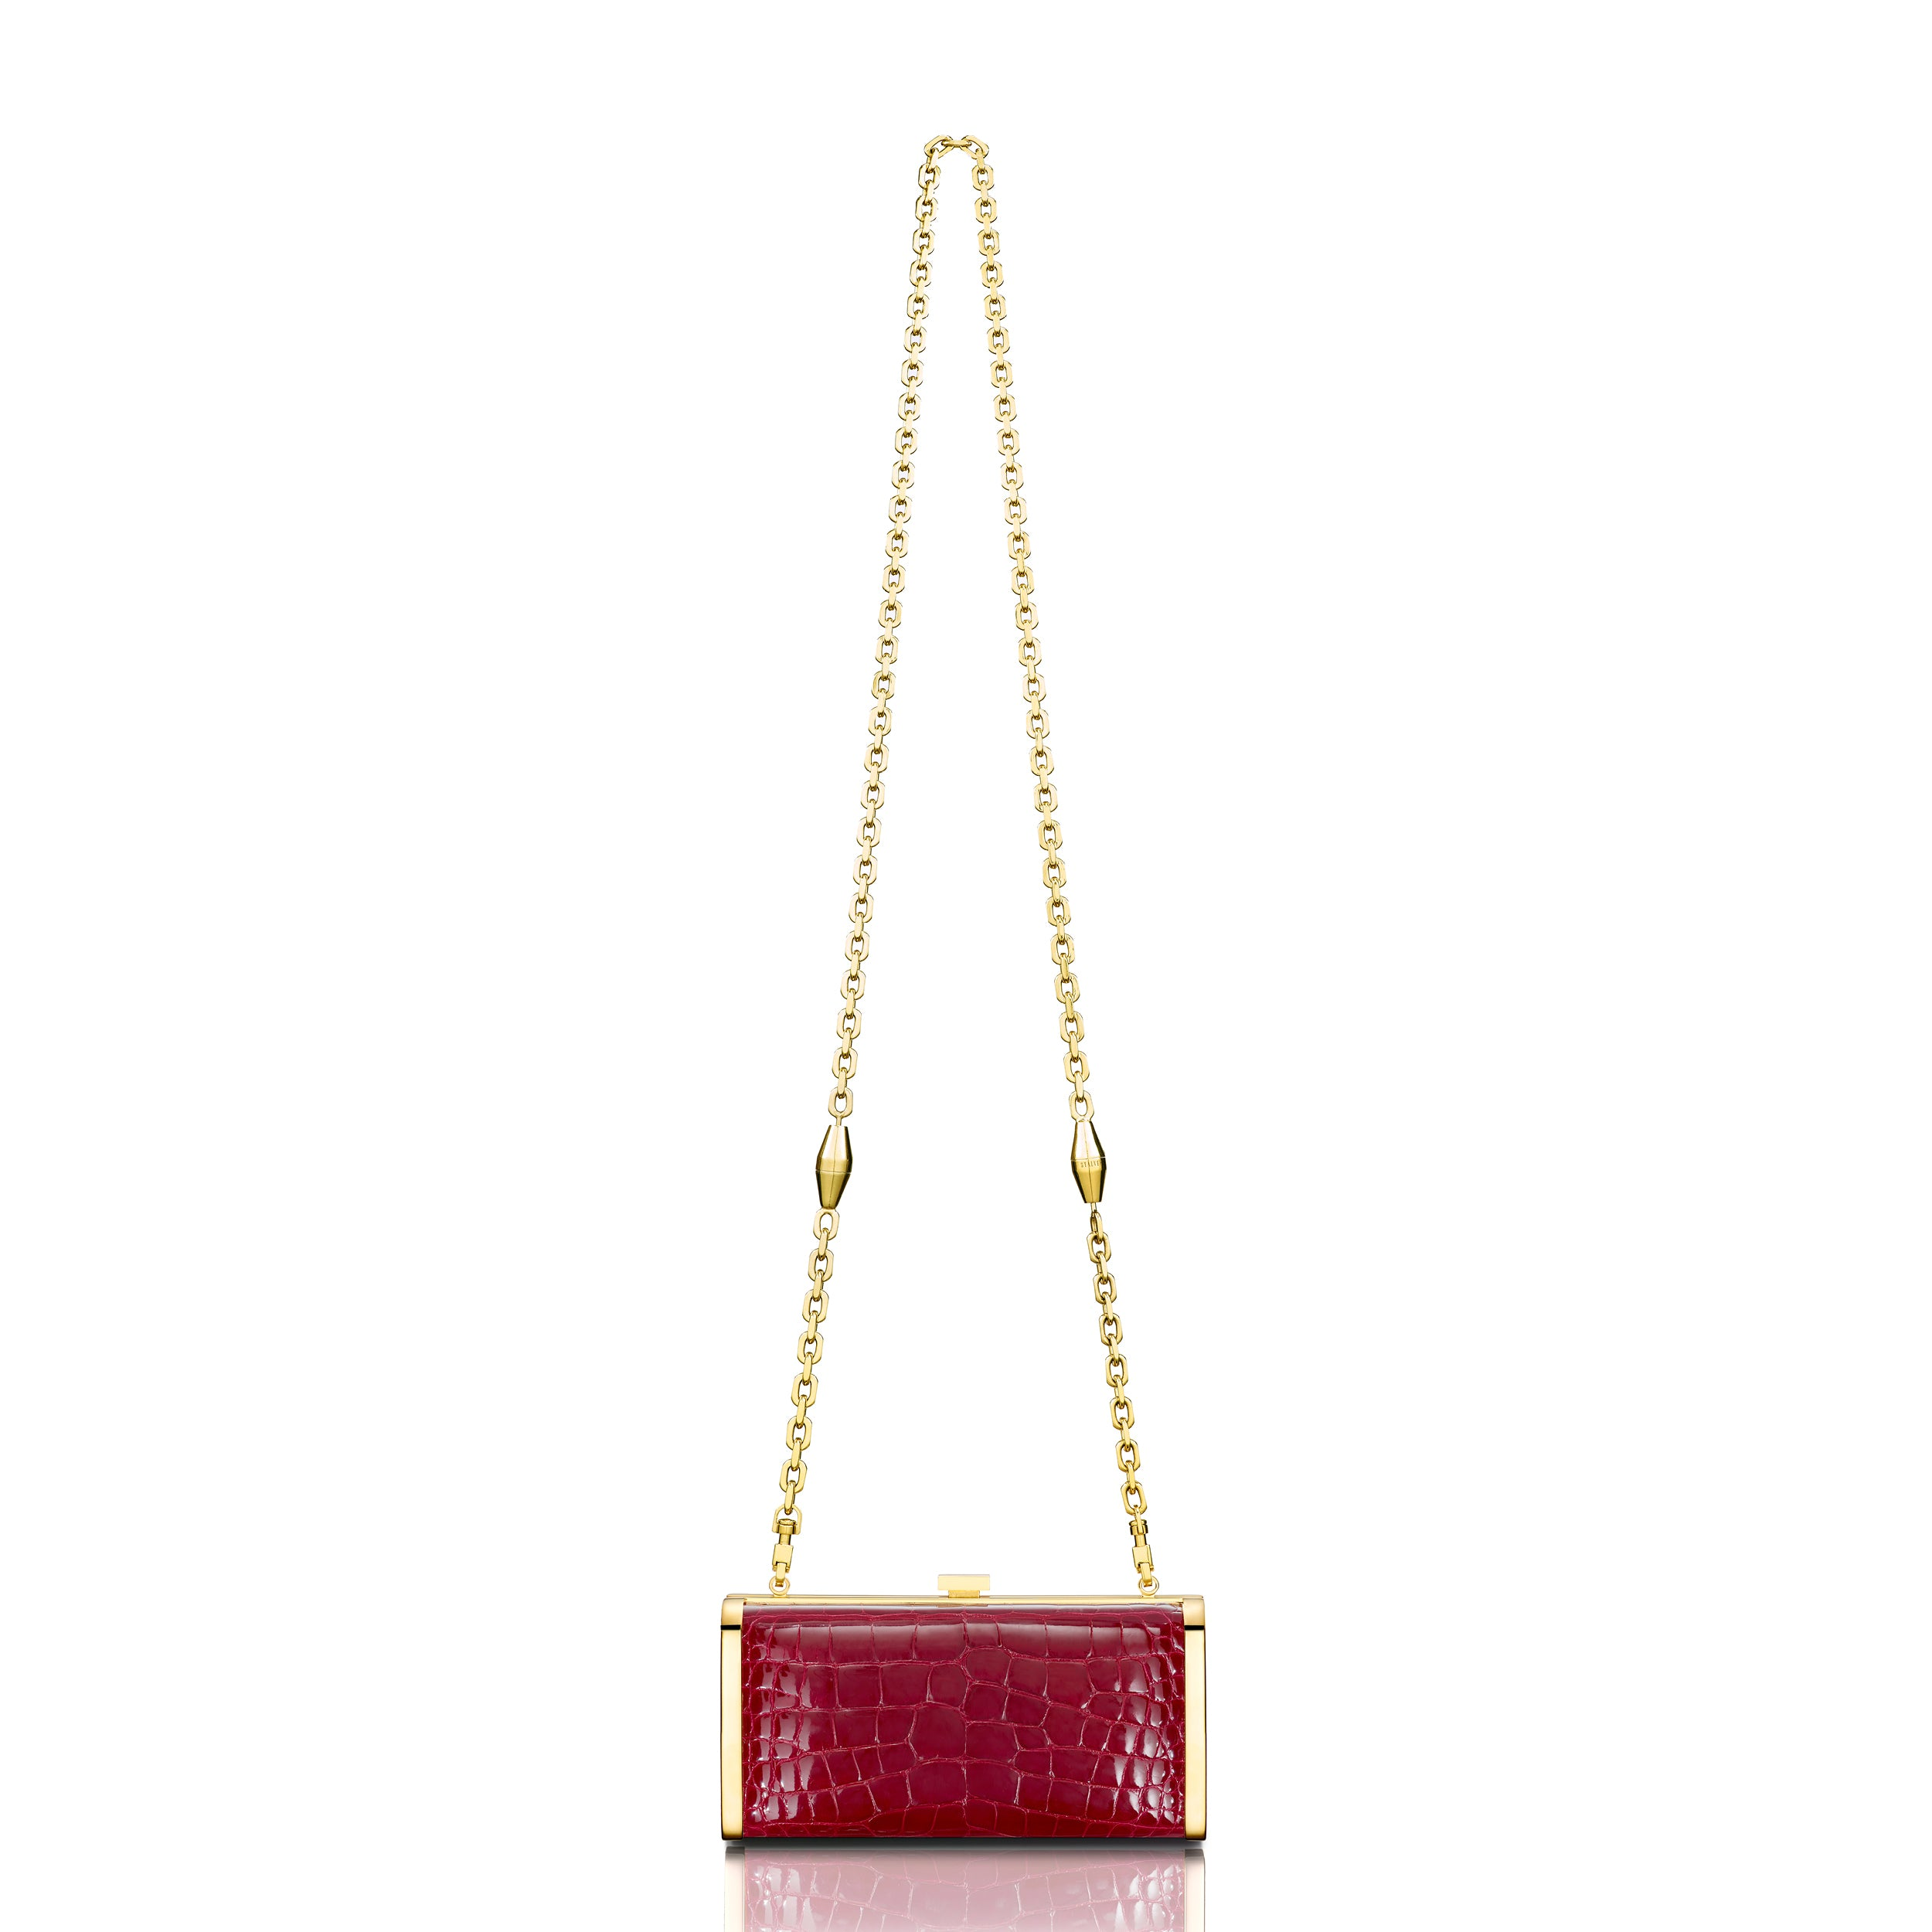 Square Clutch - Burgundy Alligator